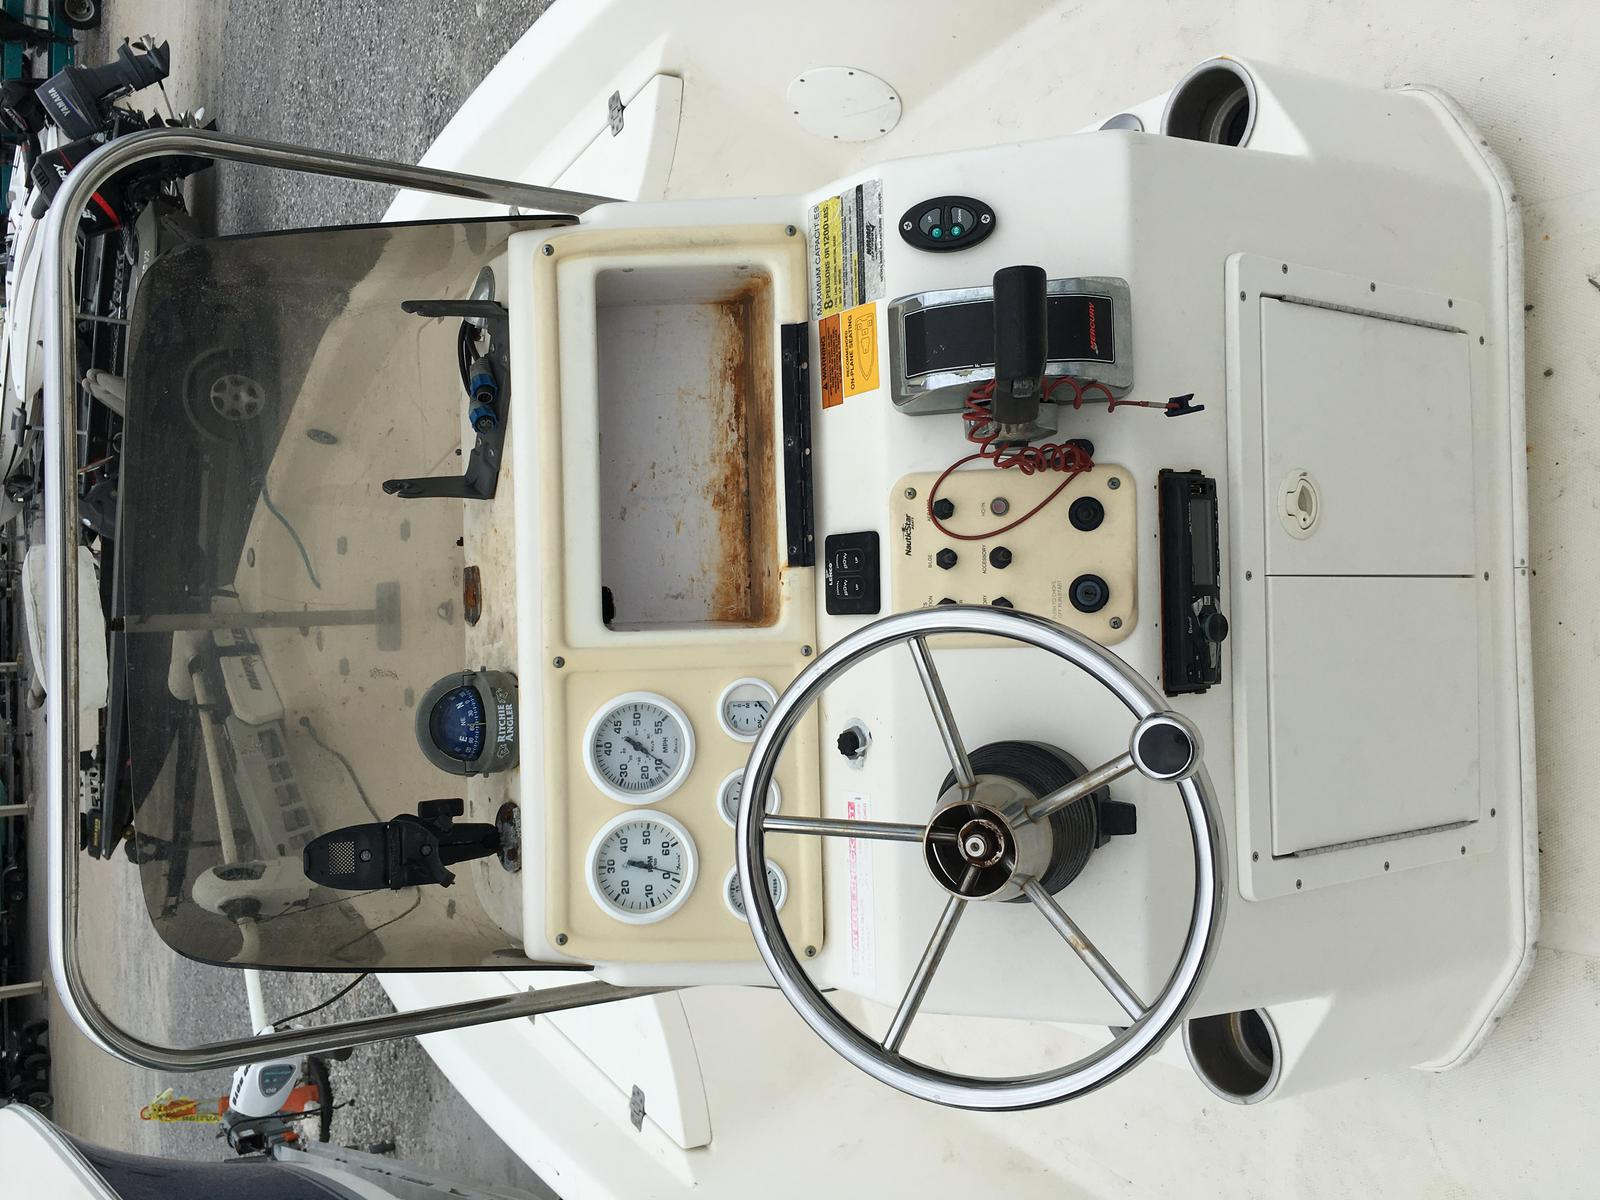 2006 Nautic Star boat for sale, model of the boat is 2110 & Image # 3 of 11